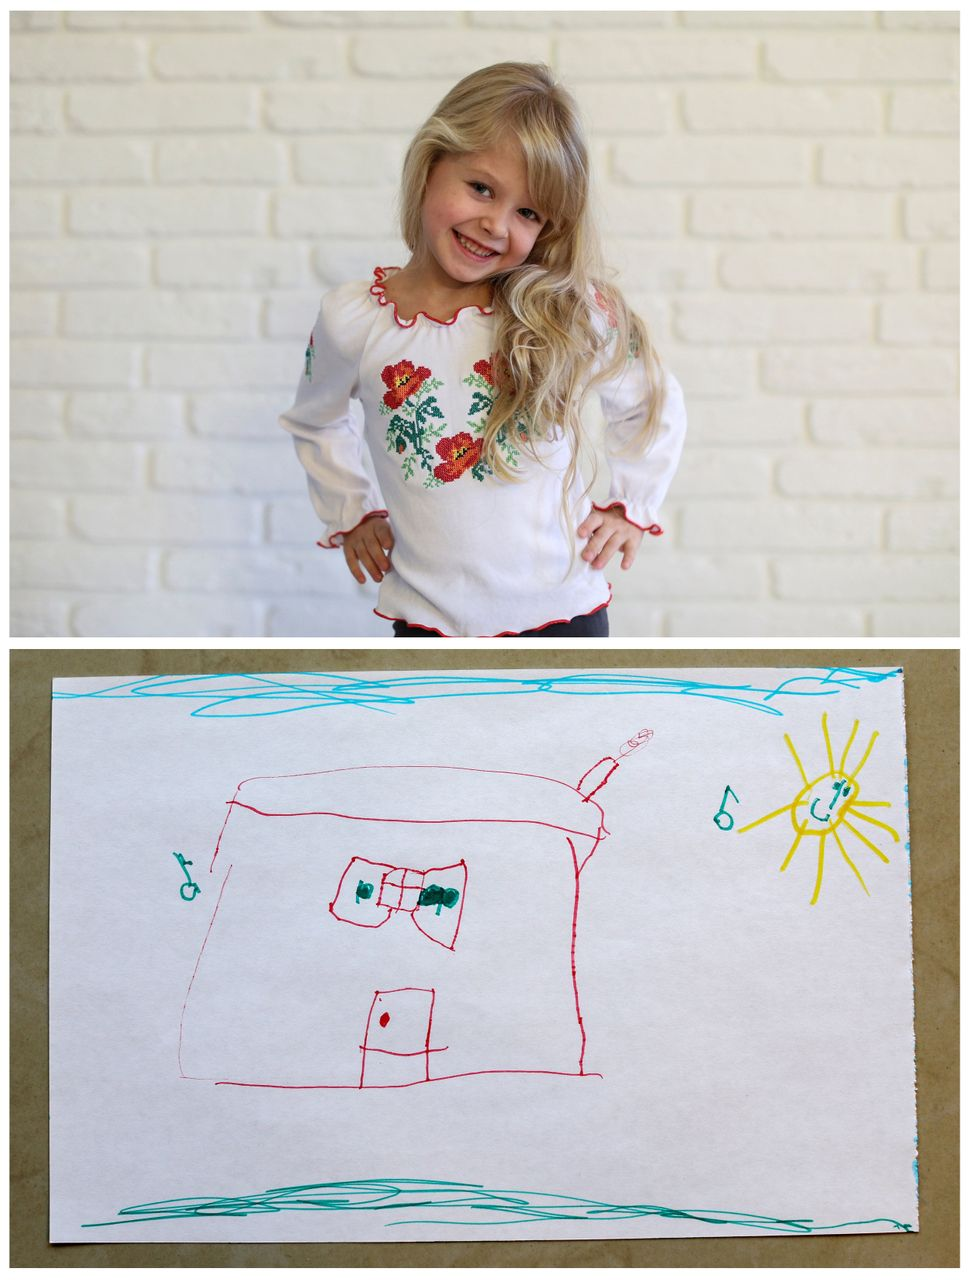 <strong>Diana Zhaldak, 4, from Kiev, Ukraine:</strong> Diana wants a magical, musical house where she can play.